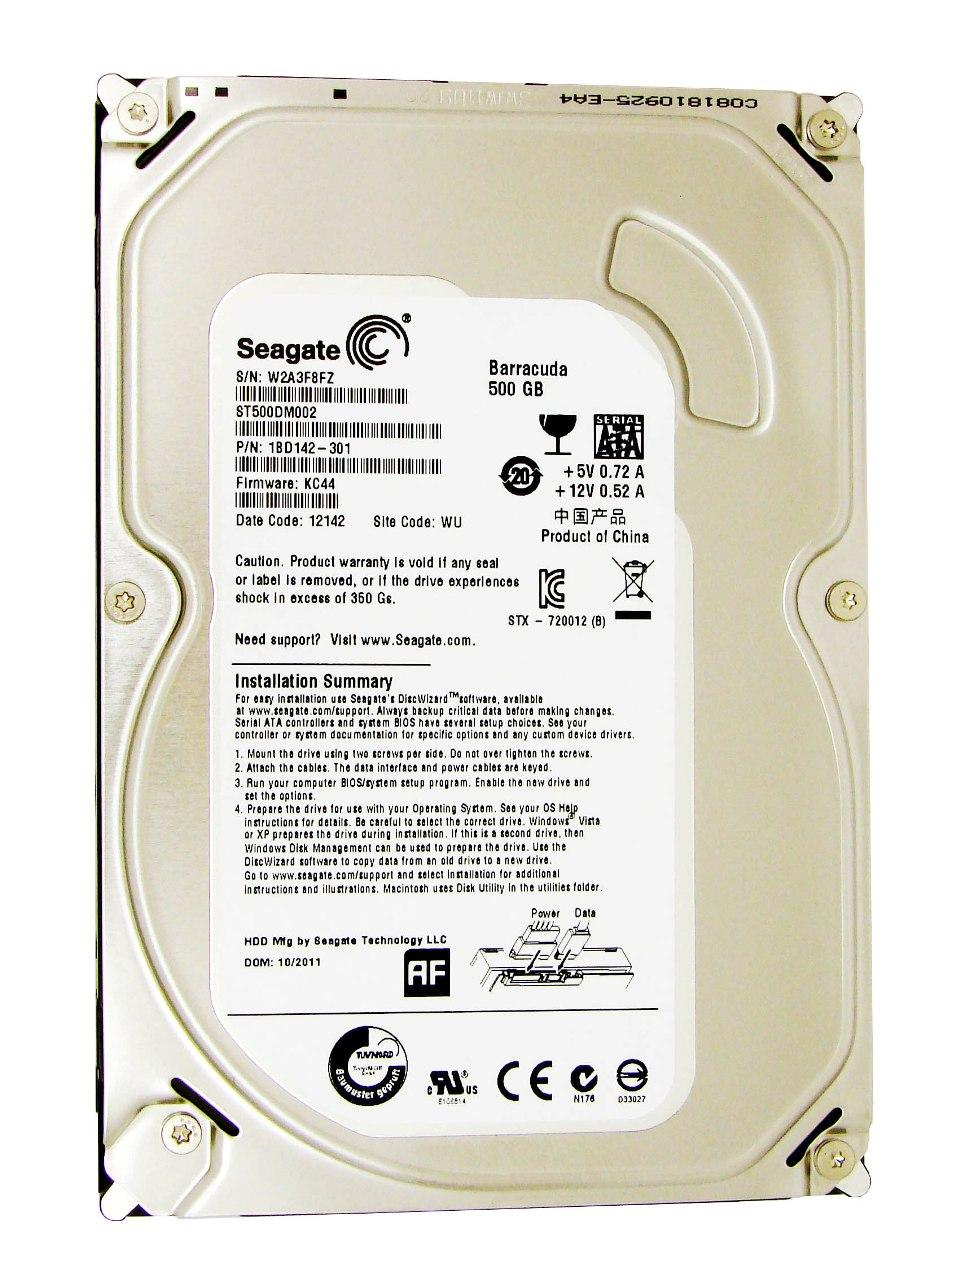 Жесткий диск SEAGATE ST500DM002 500GB SATA 7200 RPM 6GB/S 16MB от Ravta